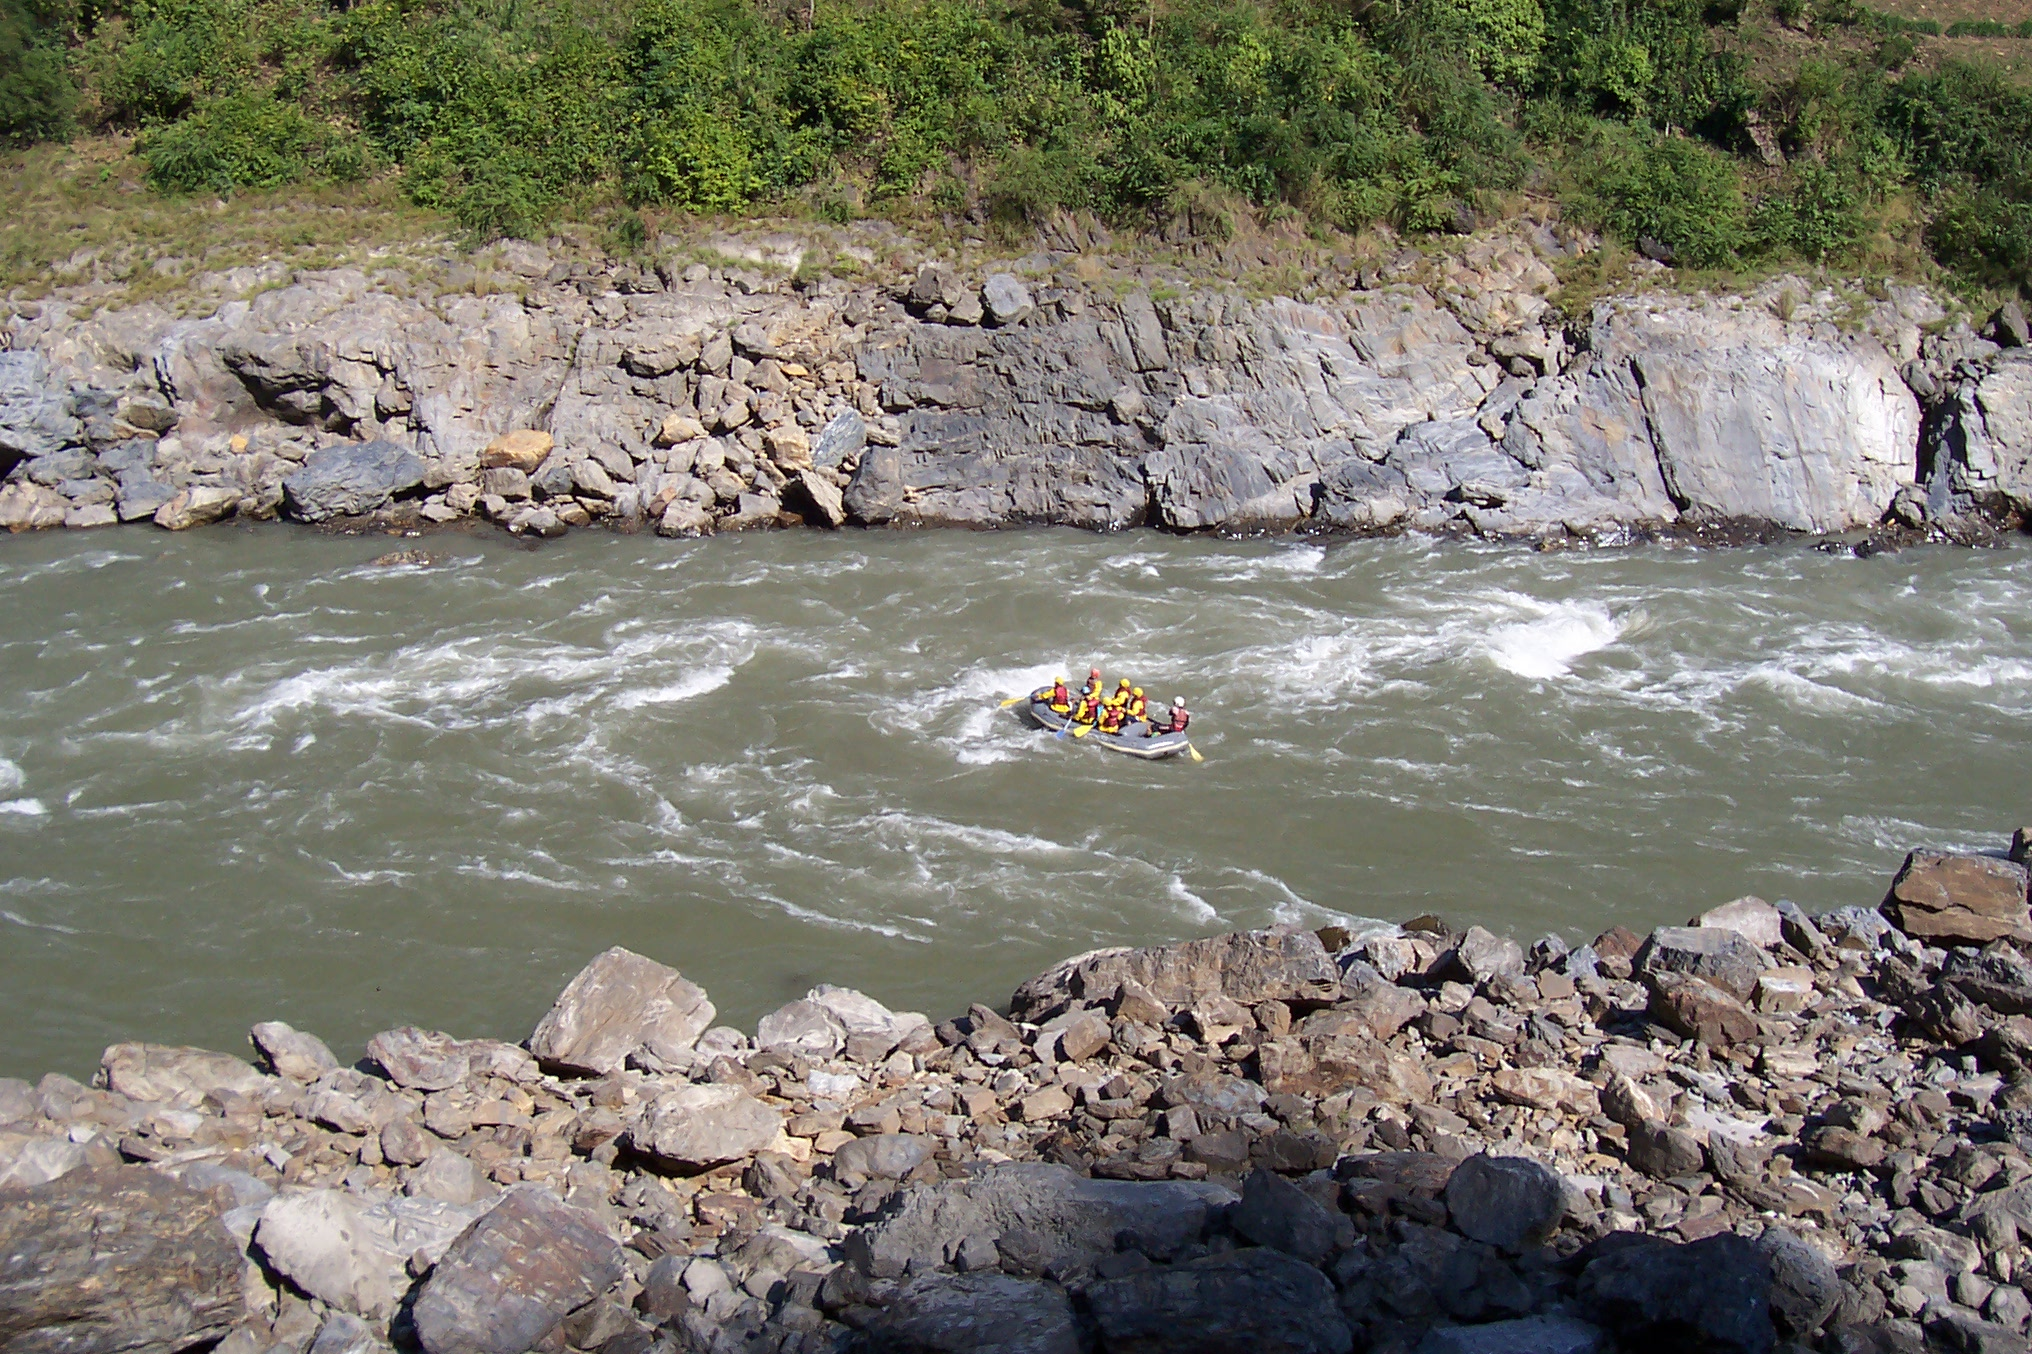 annet raft rafting sports vehicles water river whitewater wild royalty free